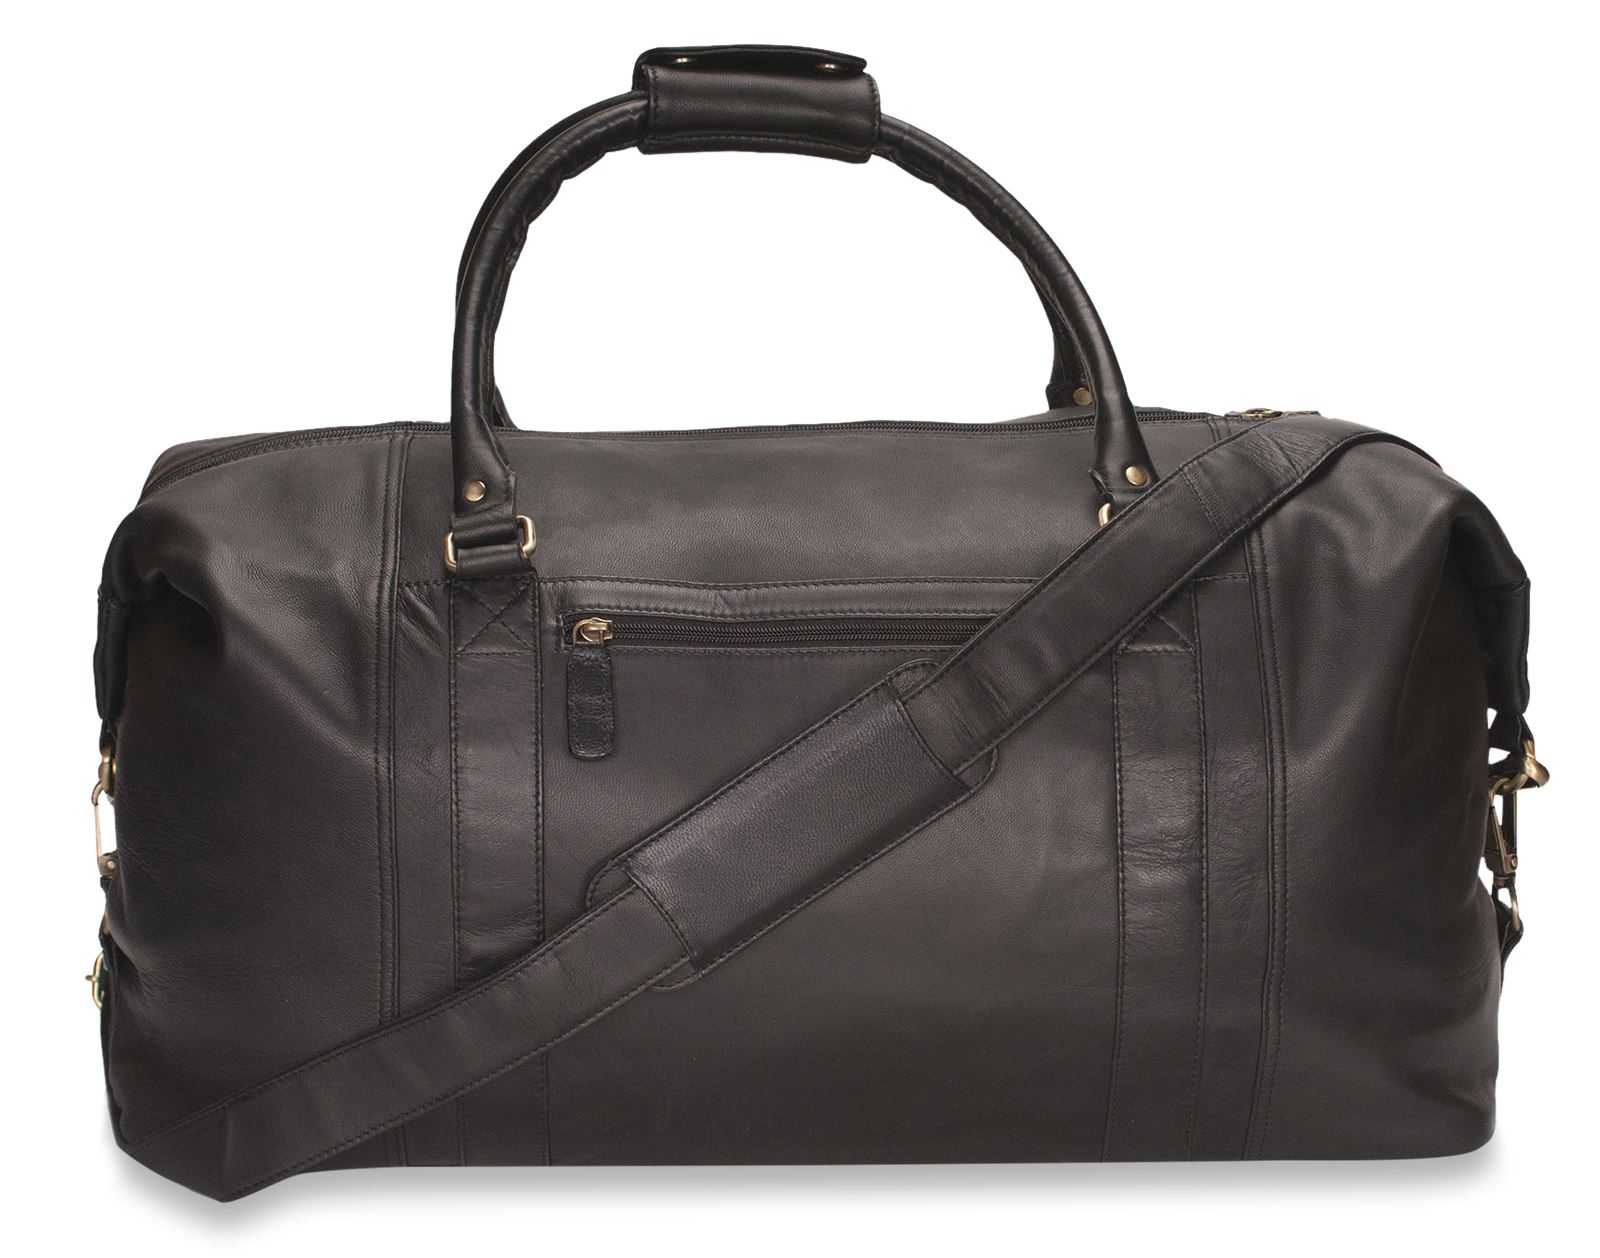 Mens Overnight Travel Bag. Here's something for a stylish traveller. Browse below and check out the men's overnight travel bags presented in the collection. With such a wide selection of products you'll easily find the best companion for travelling round the globe. Find out more below and get inspired to get a .